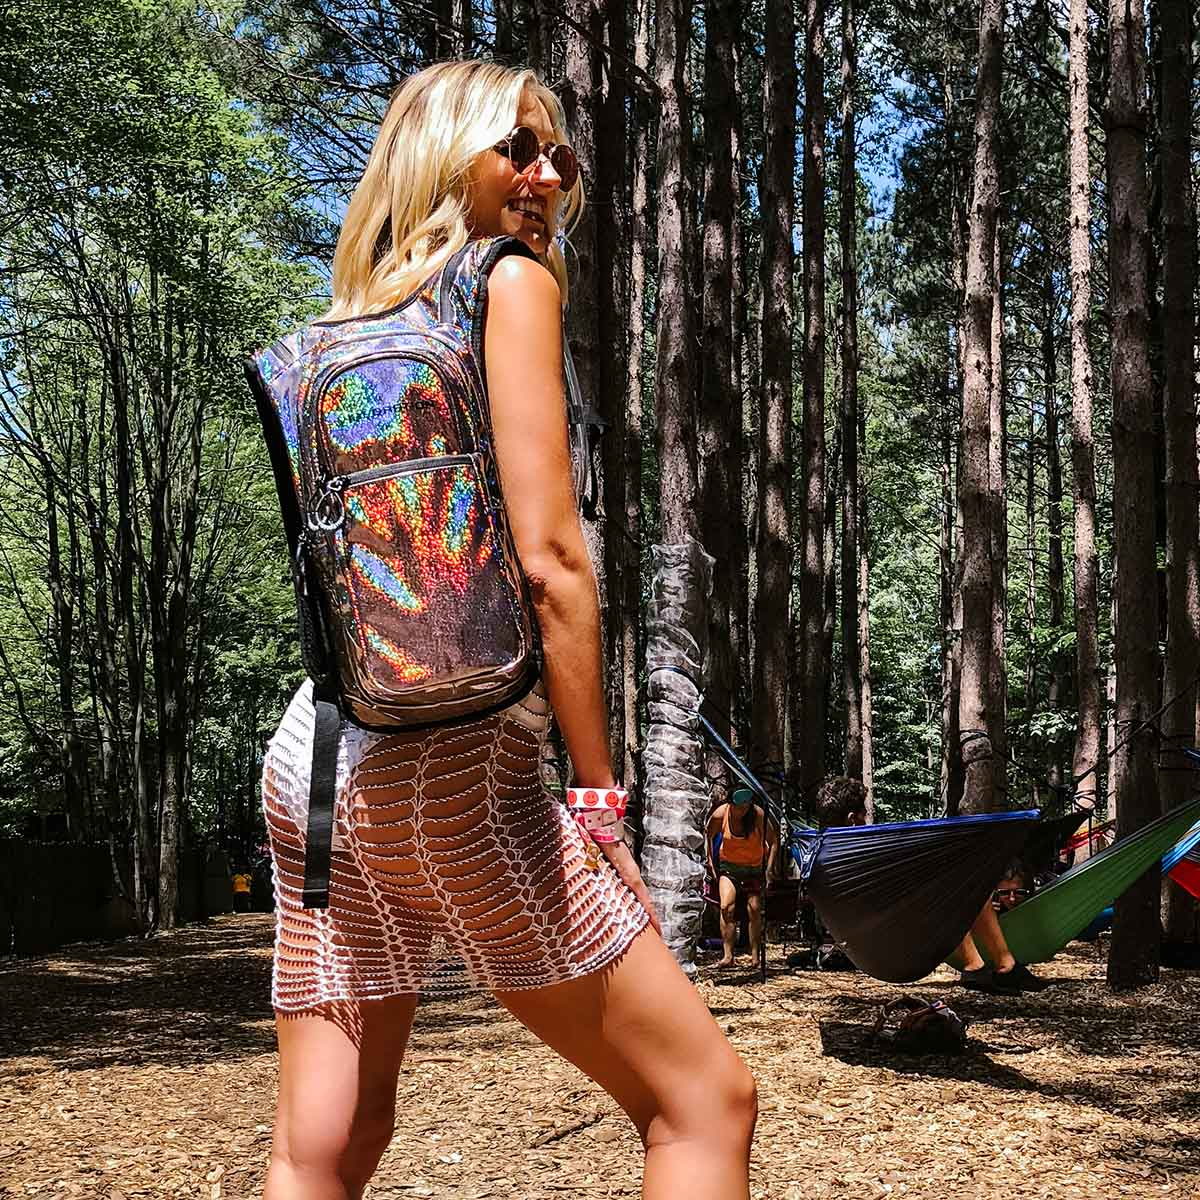 Glitter holographic hydration pack for music festivals